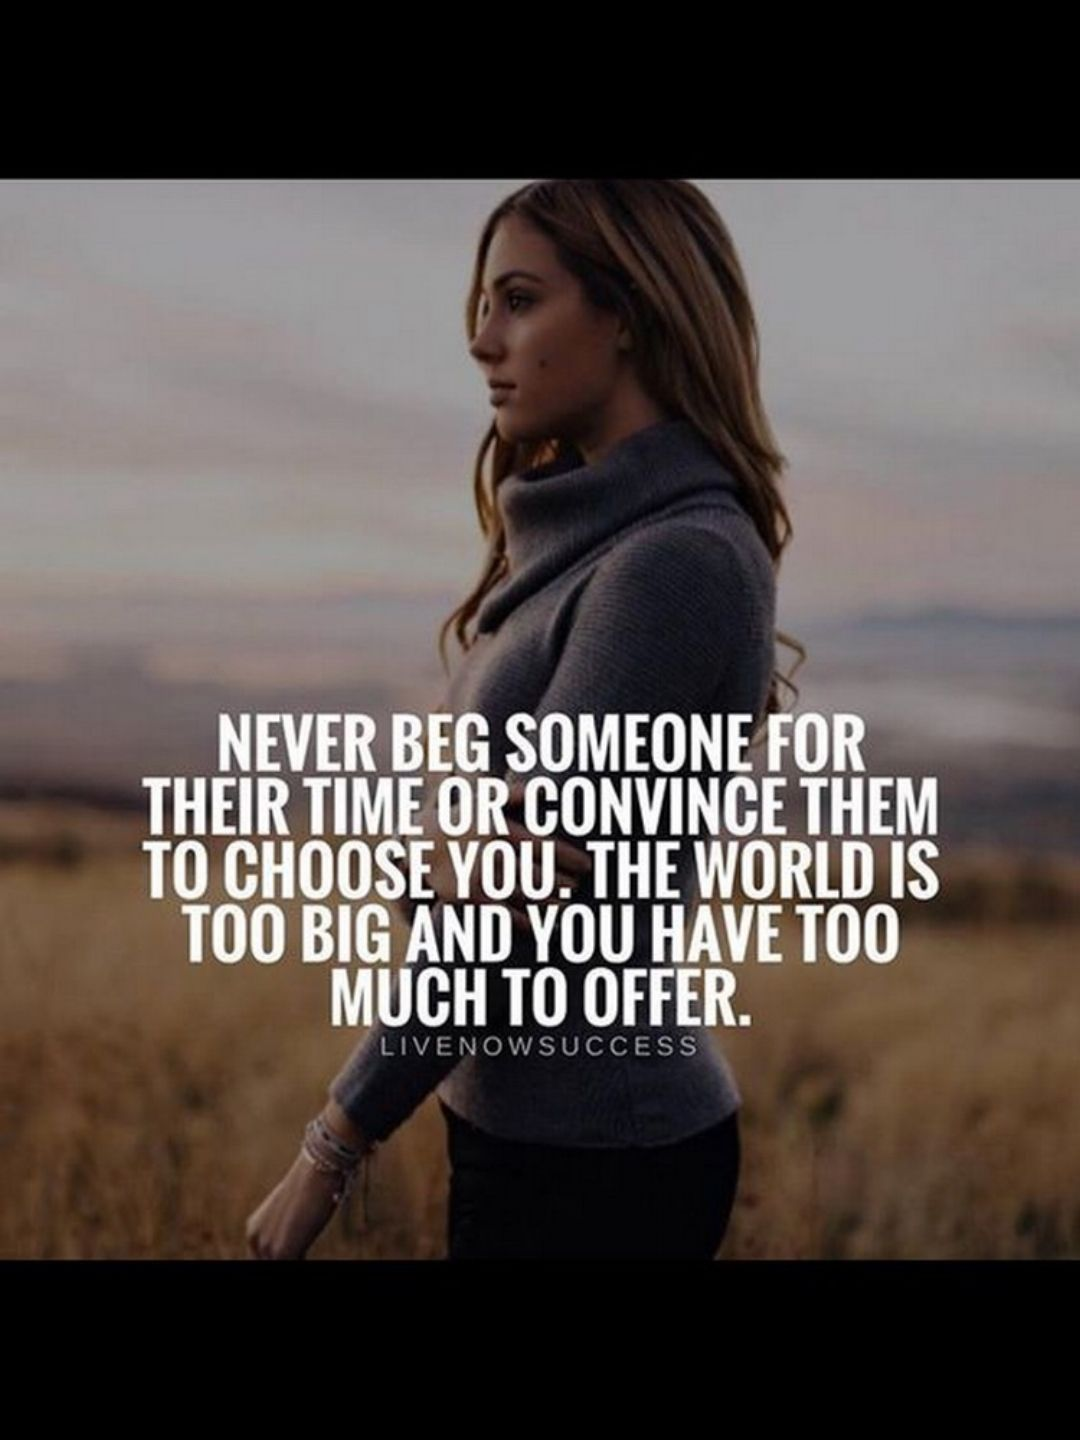 Positive Memes And Reaffirming Lifequoters Live Nowsuccess Life Quotes Perfection Quotes Positive Memes